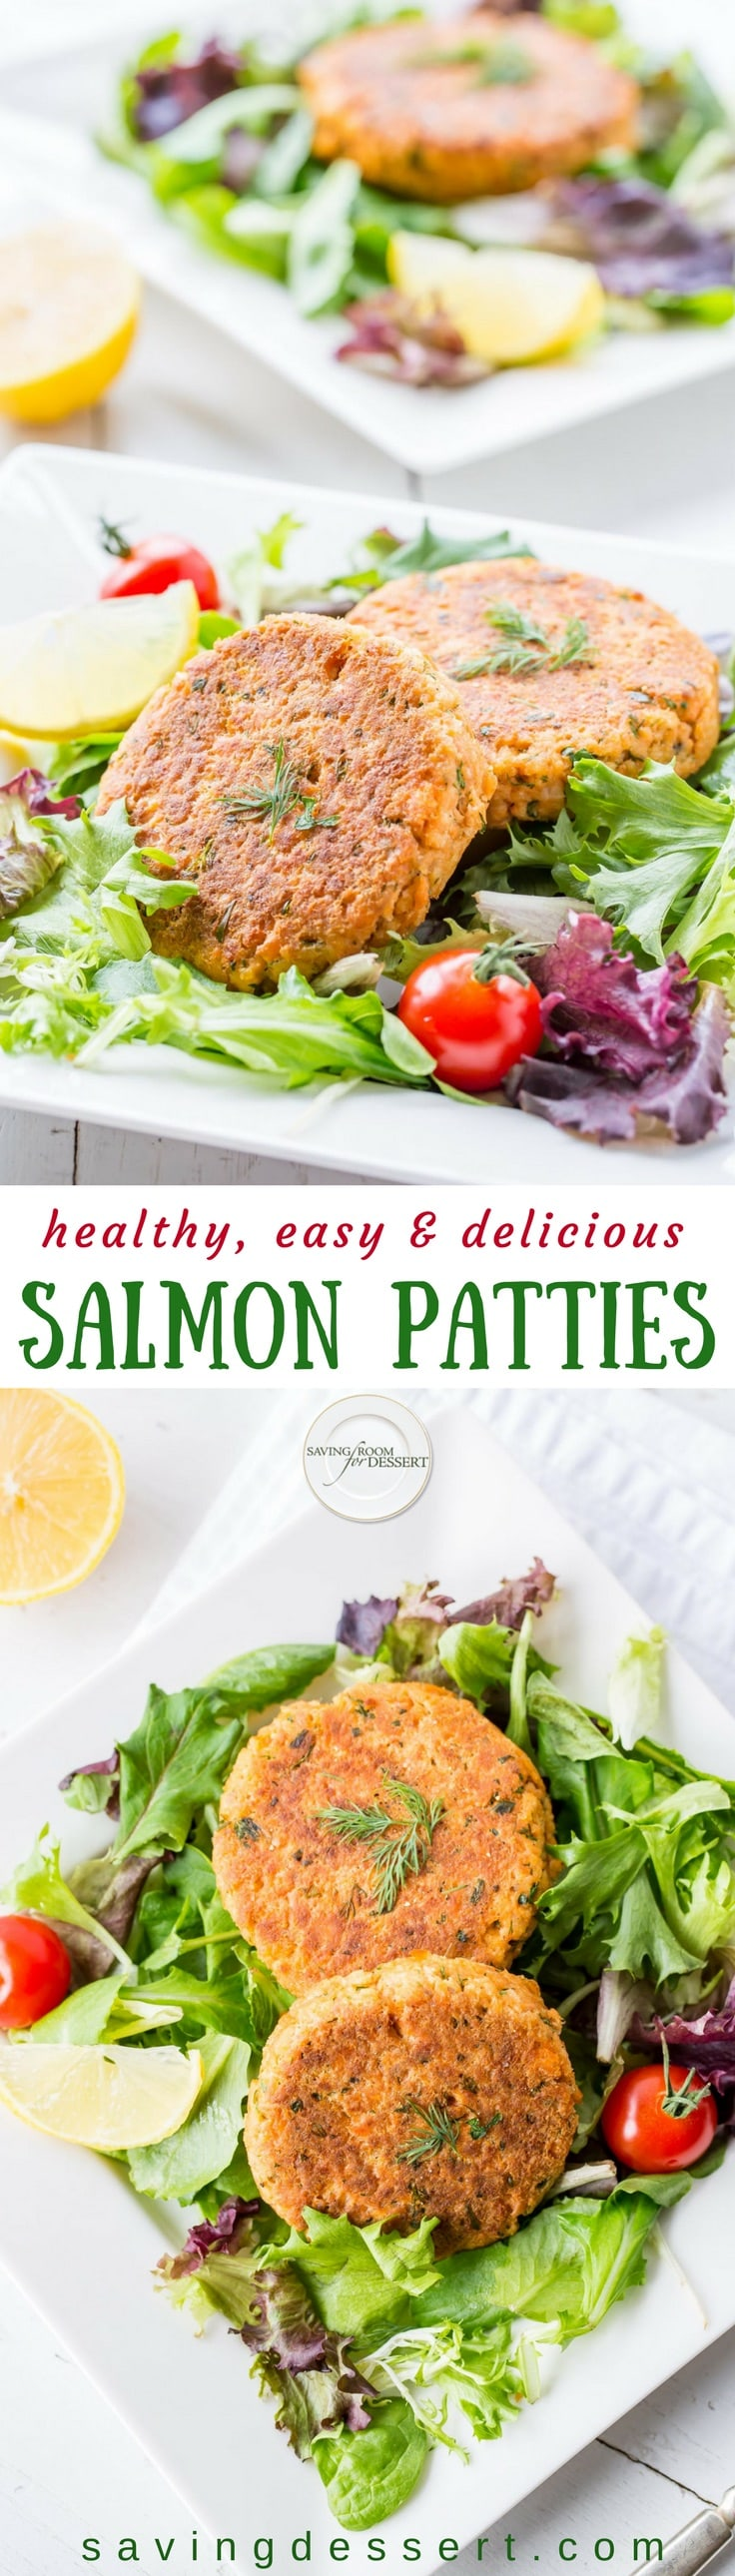 Easy, healthy and delicious, Salmon Patties are a terrific anytime meal loaded with flavor, plenty of protein and are perfect served with salad or as a burger style on a bun. www.savingdessert.com #savingroomfordessert #easydinner #quickdinner #salmon #salmoncakes #salmonburgers #salmonpatties